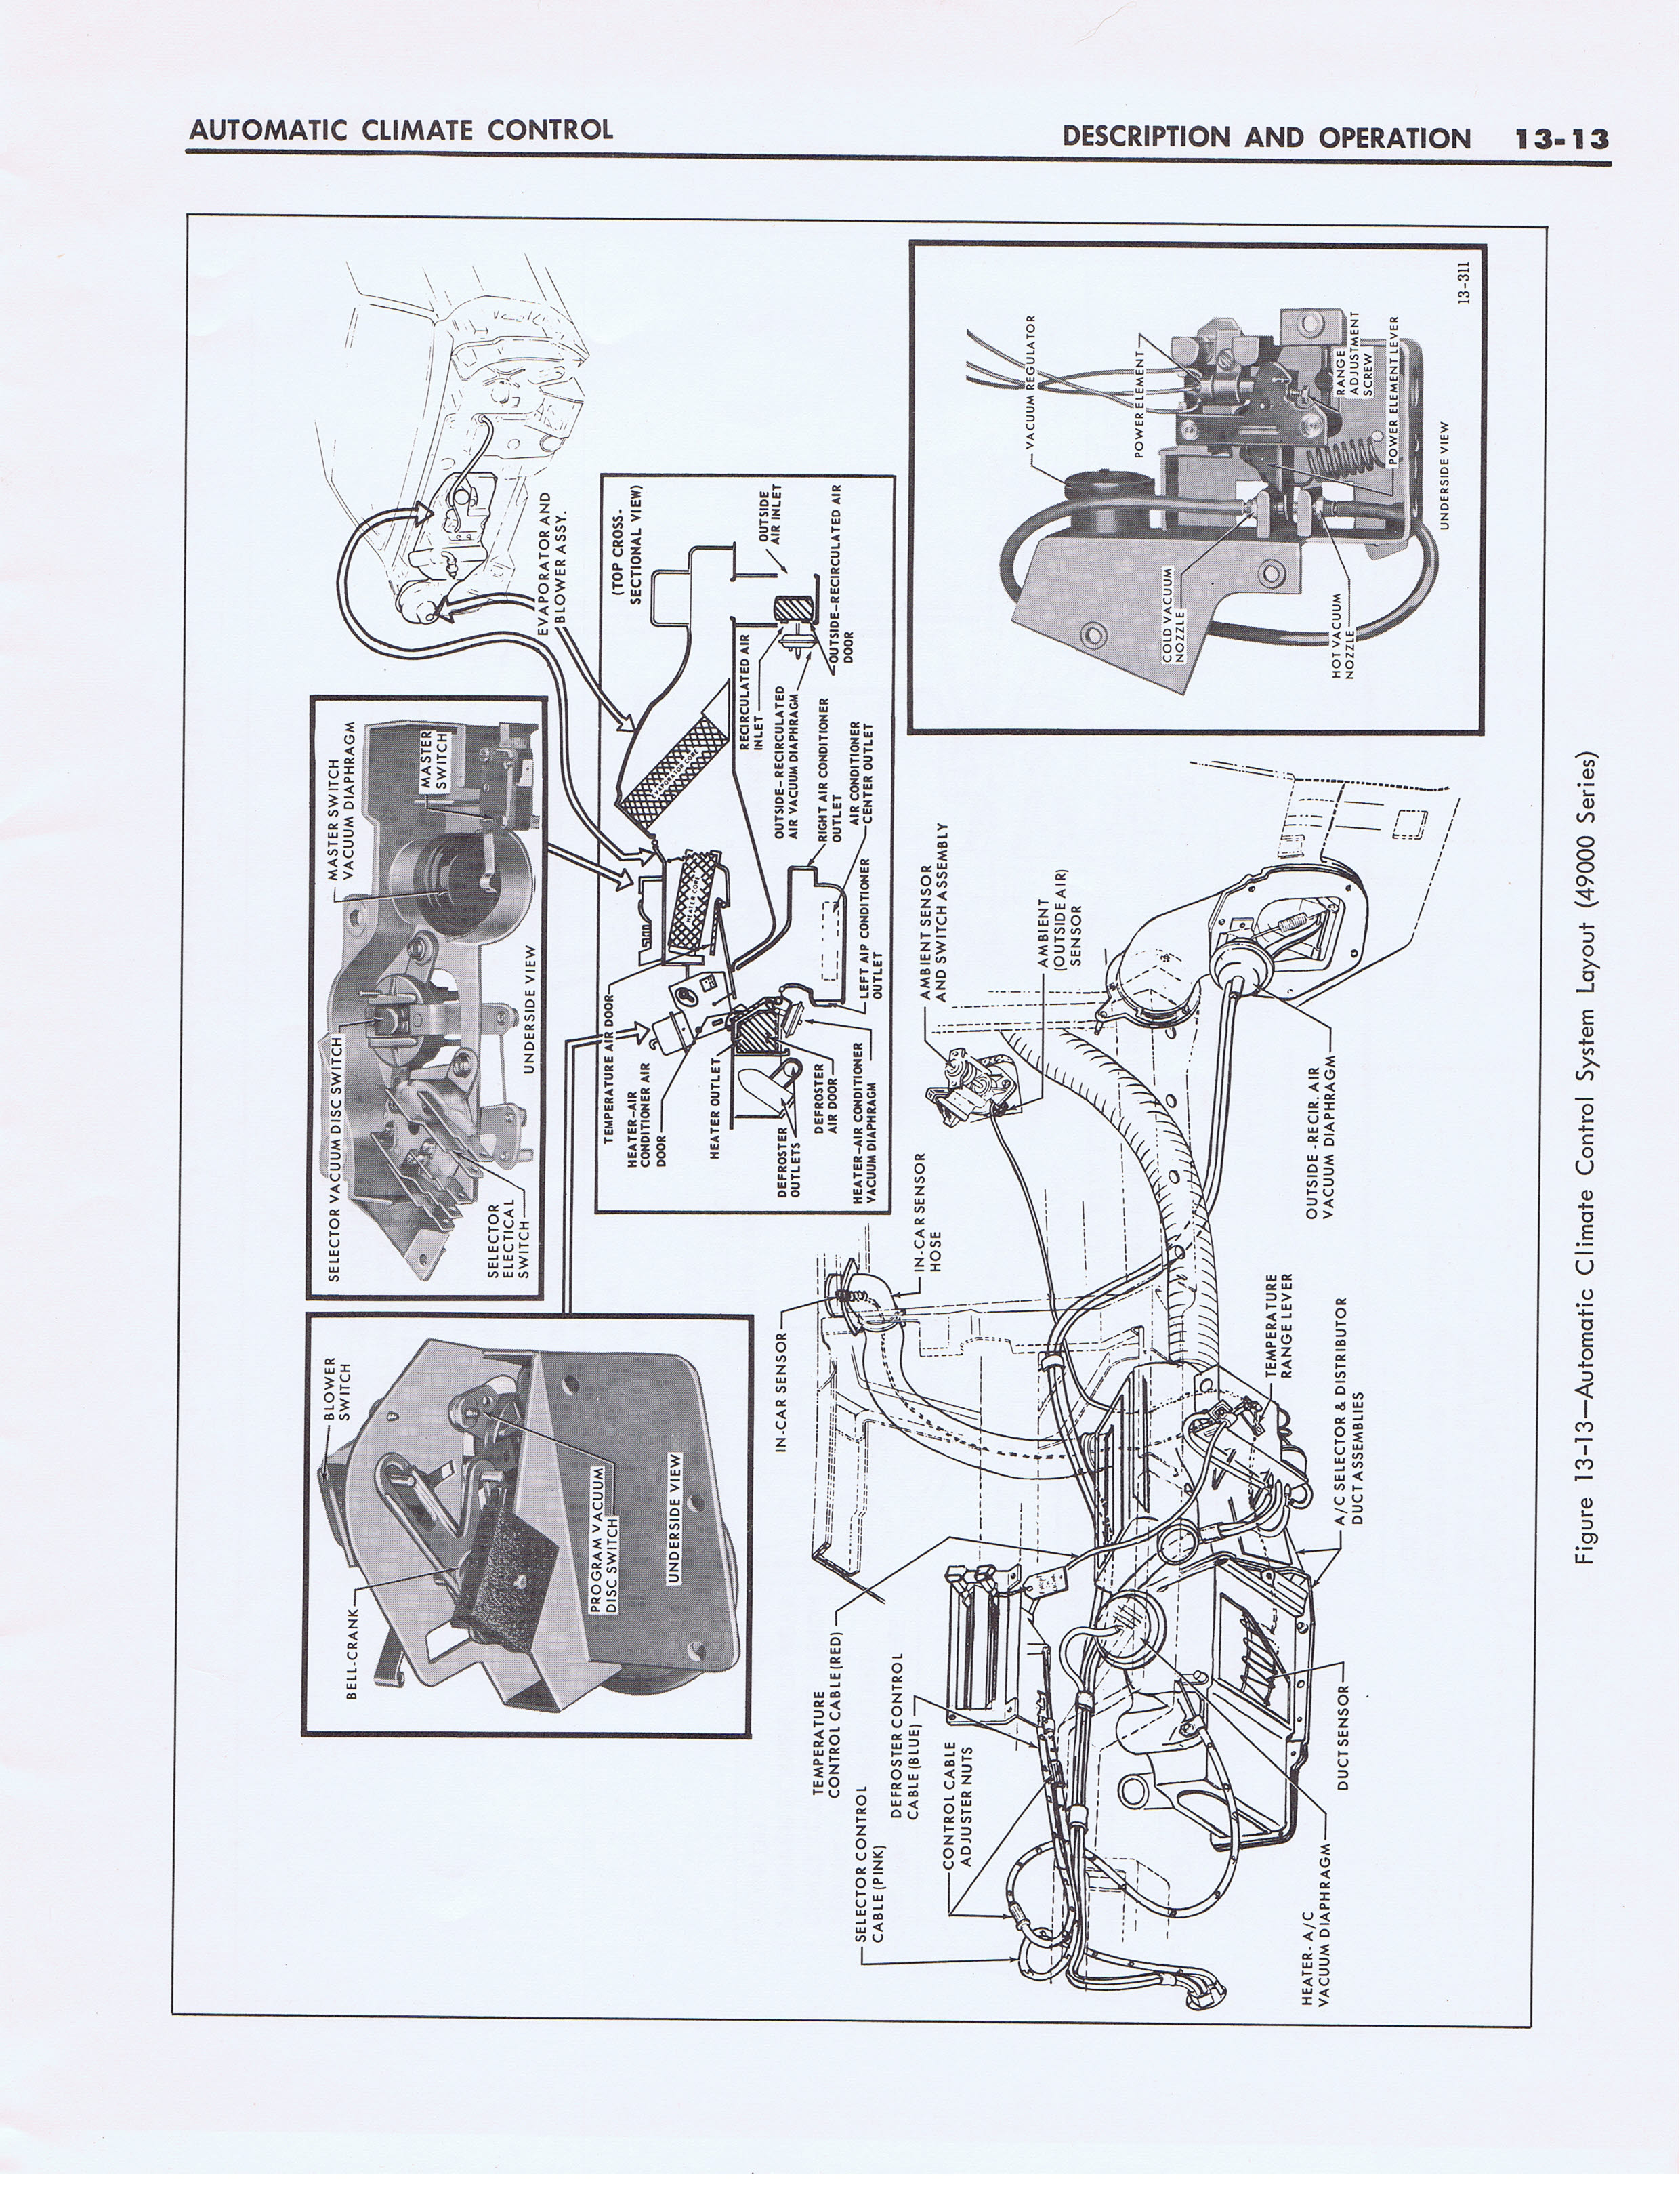 1967 Buick Automatic Climate Control (Second Type) page 15